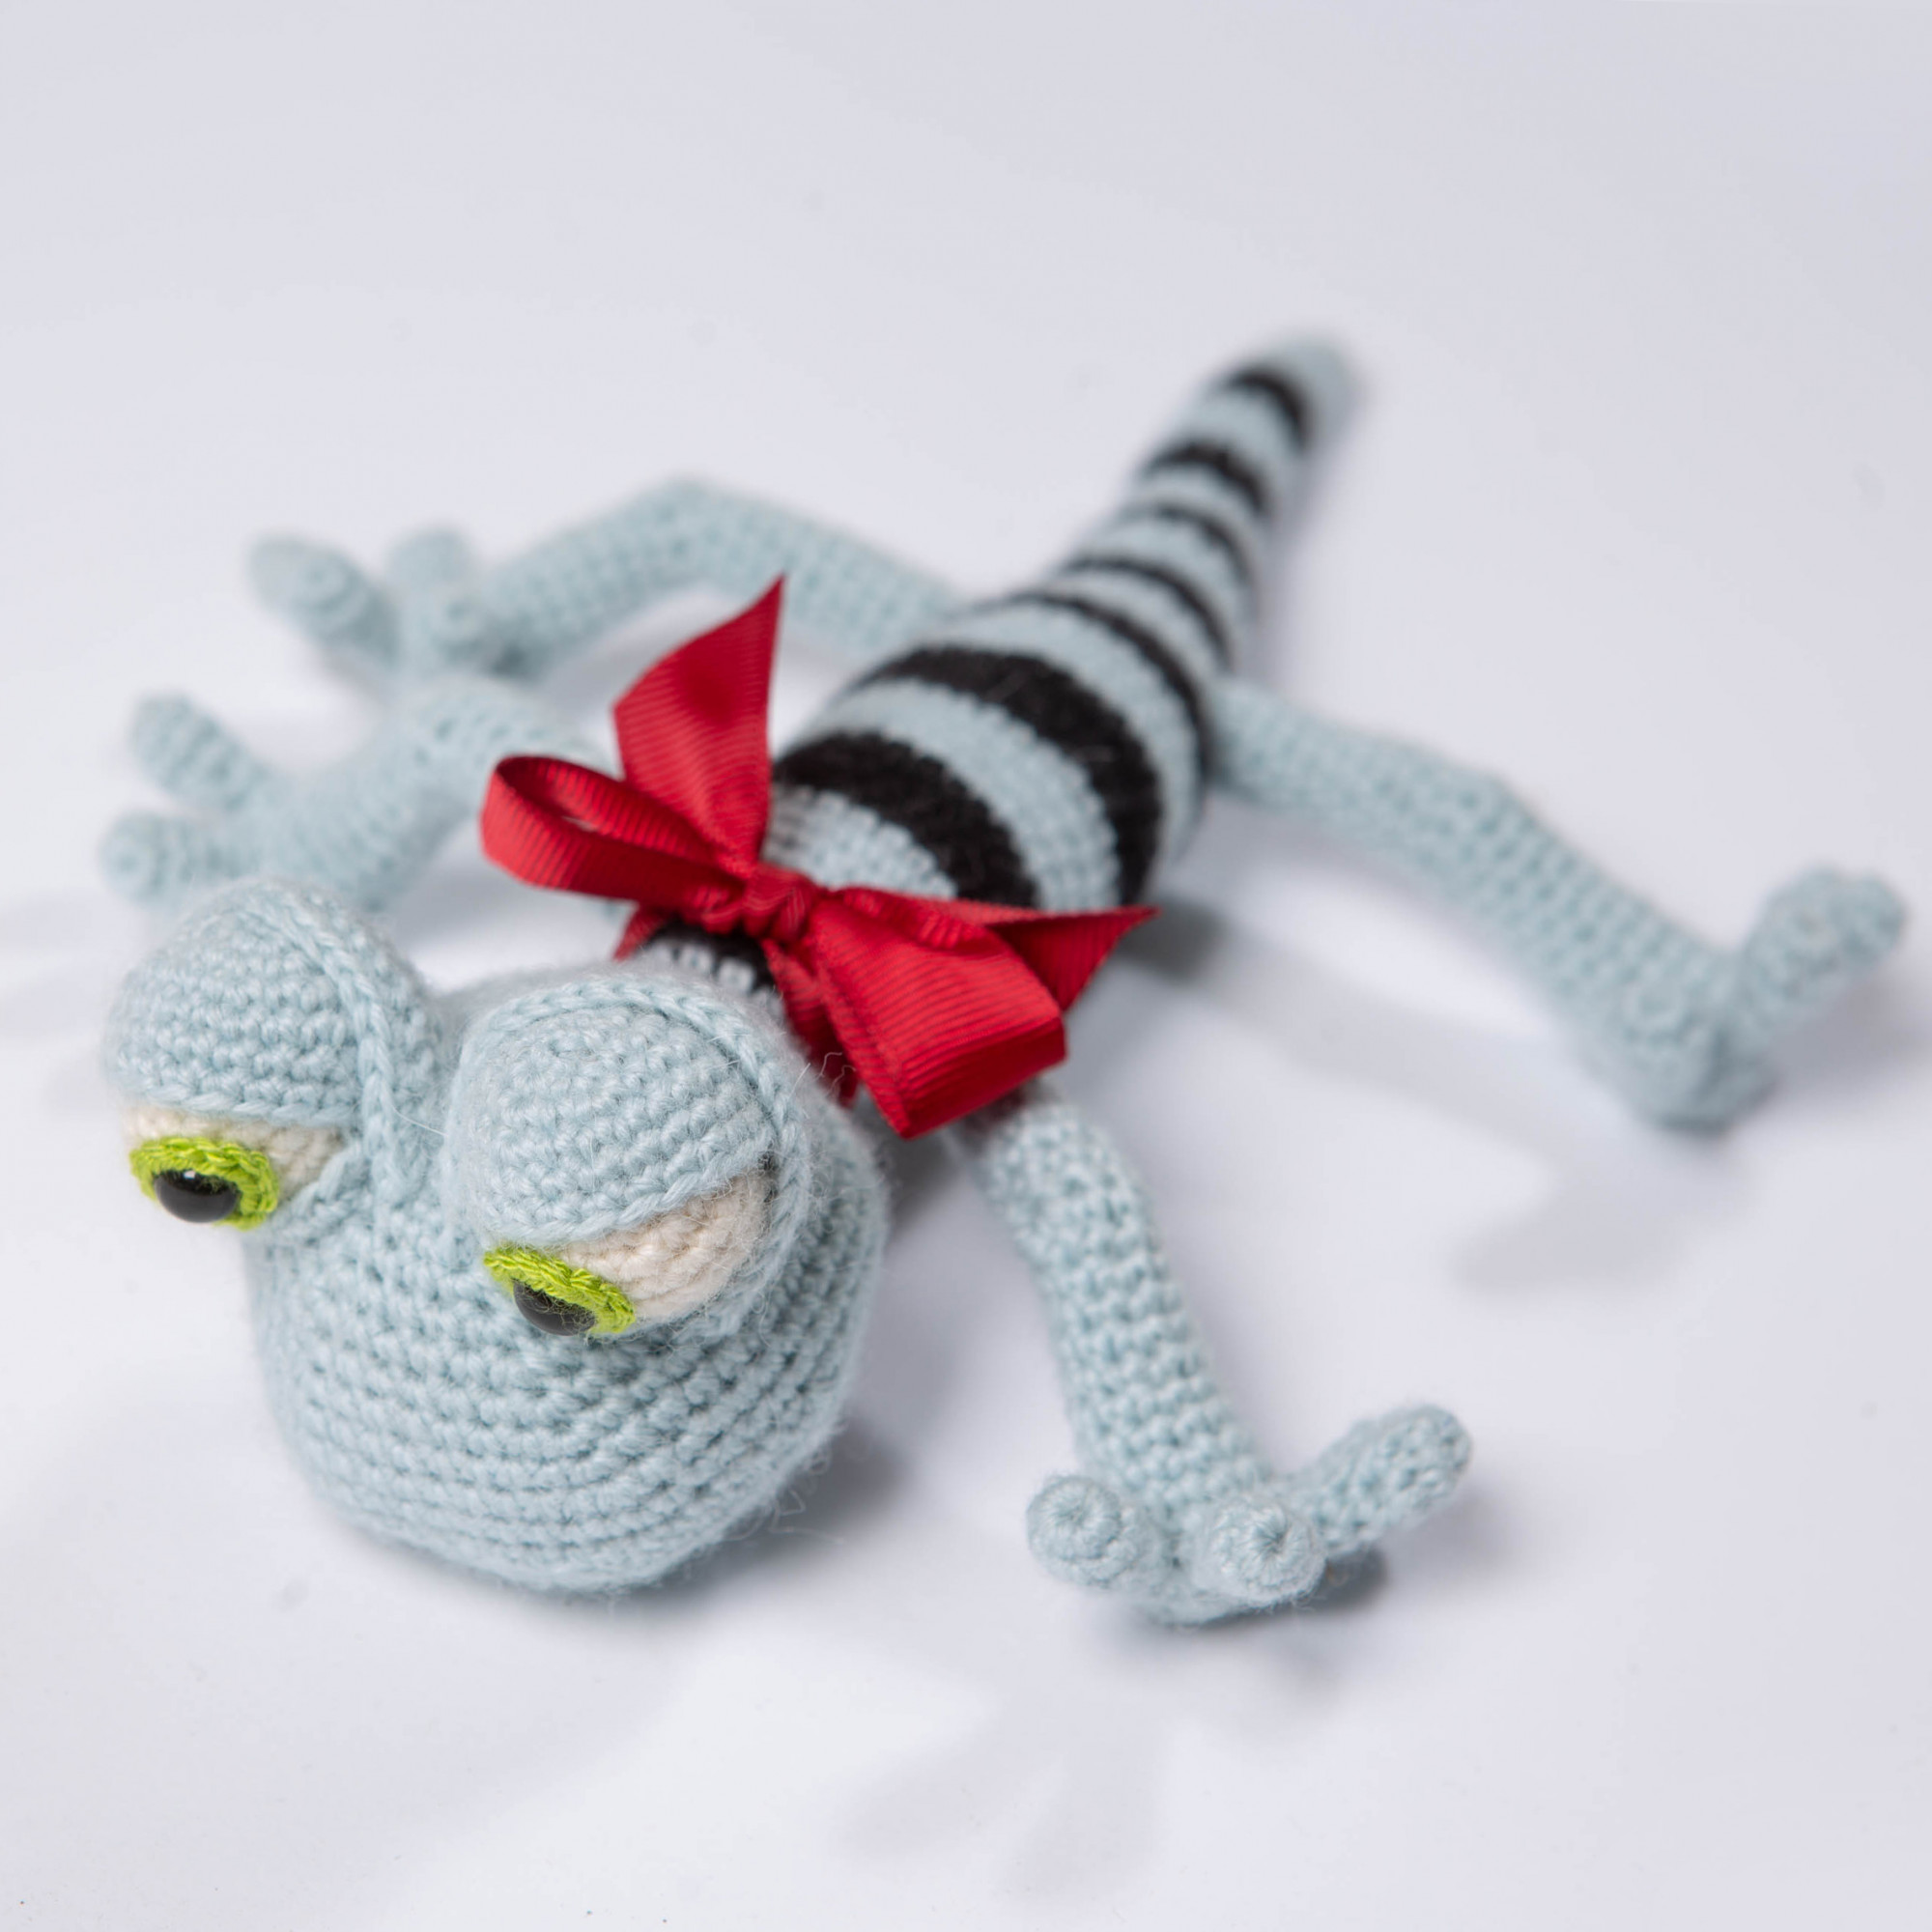 The lizard is a toy for a kid. Blue funny reptile